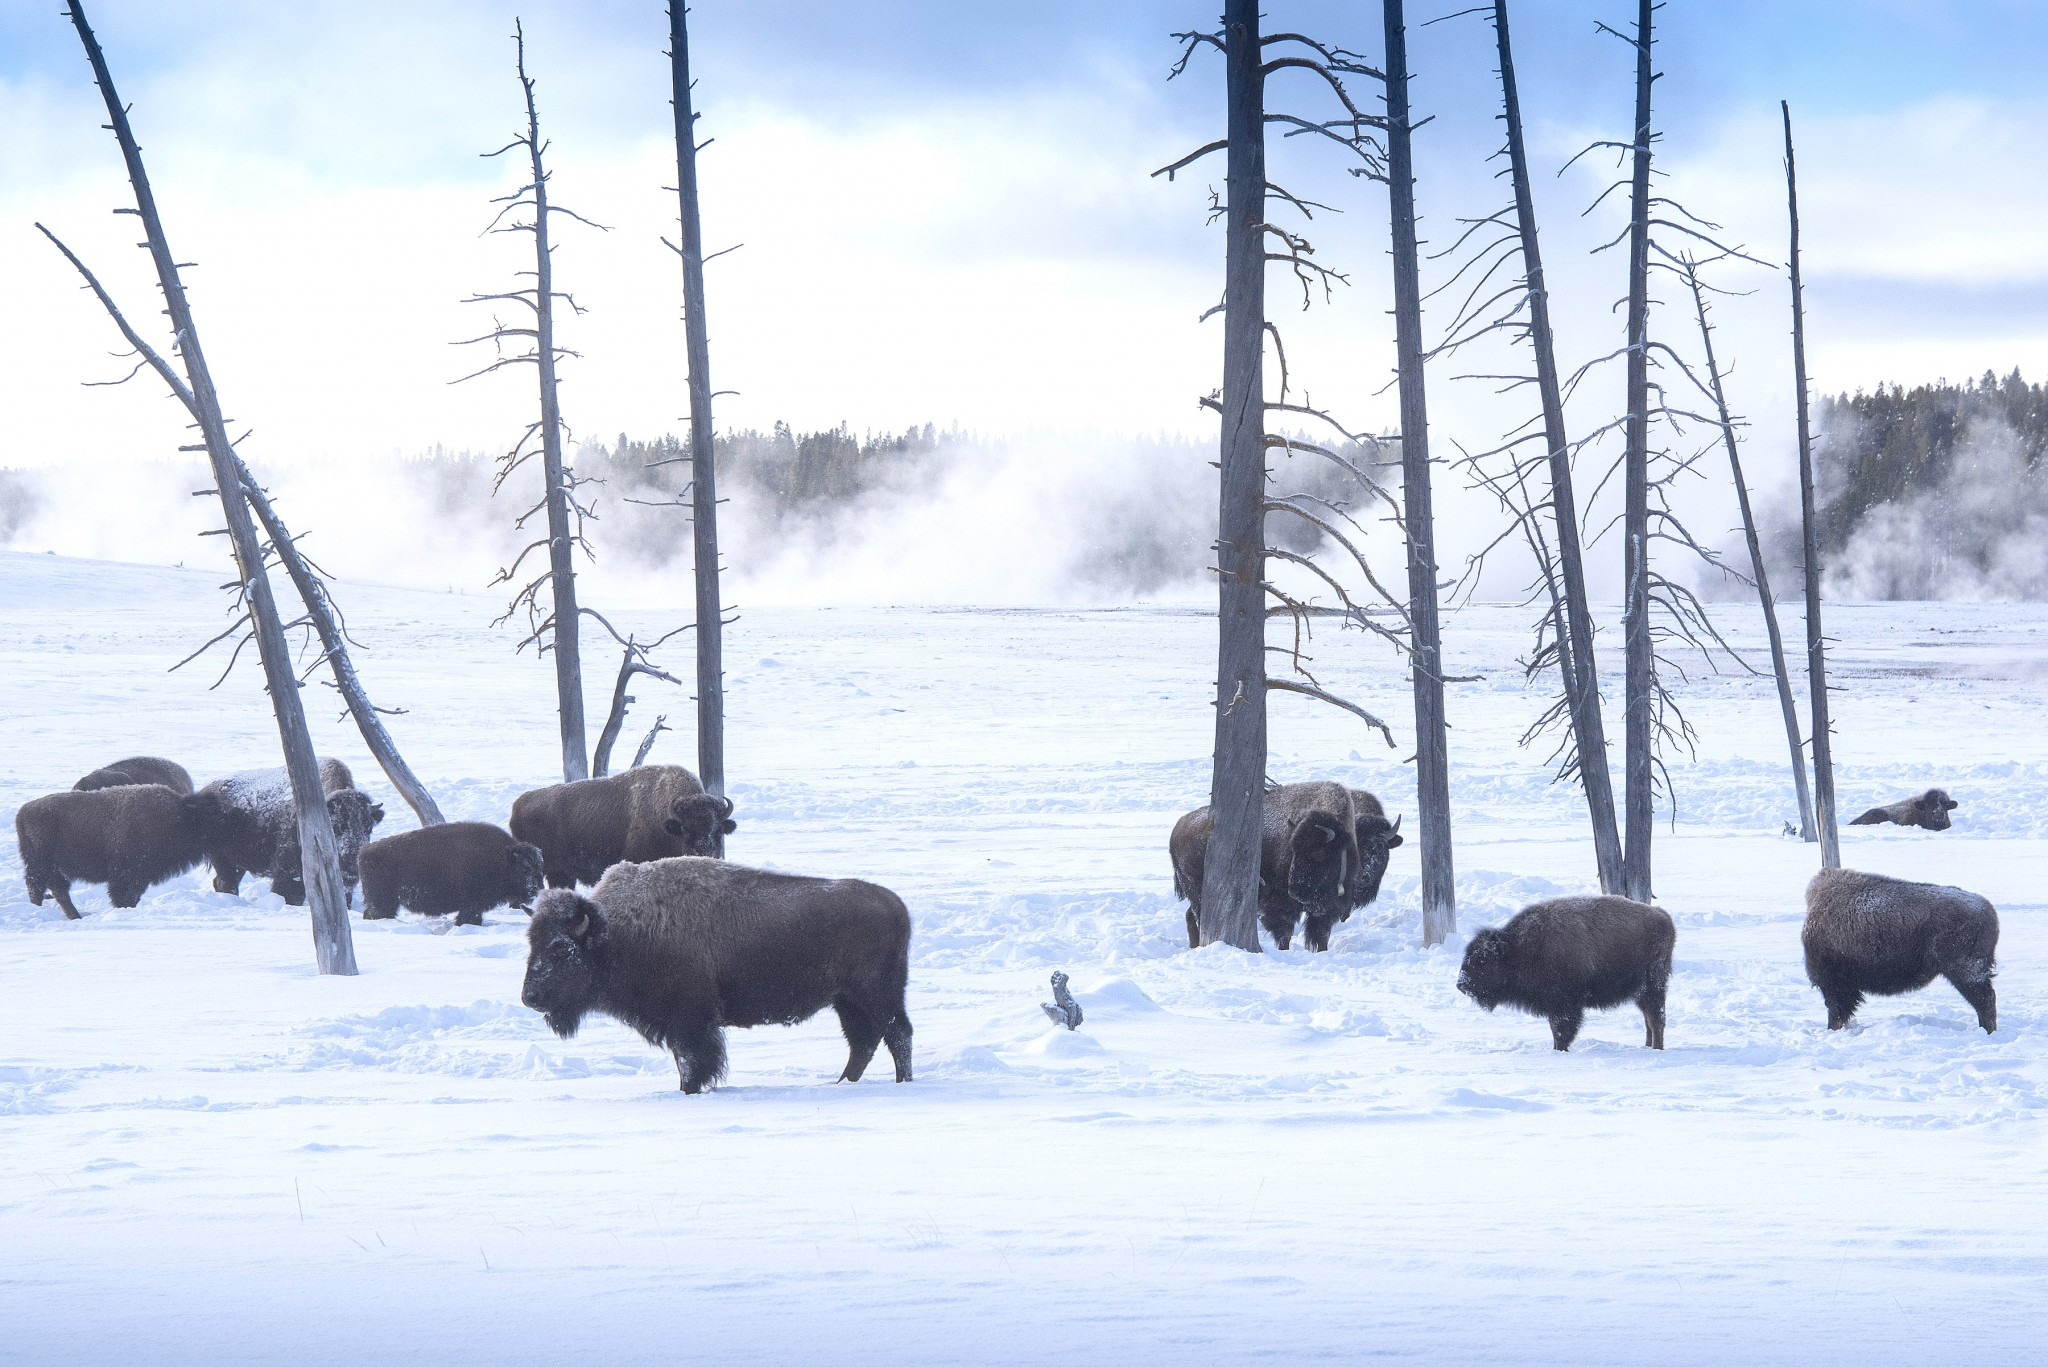 A small herd of bison gather in an open grove as Yellowstone's Midway Geyser Basin sends up plumes of steam in the background. (Photo by Art Weber)